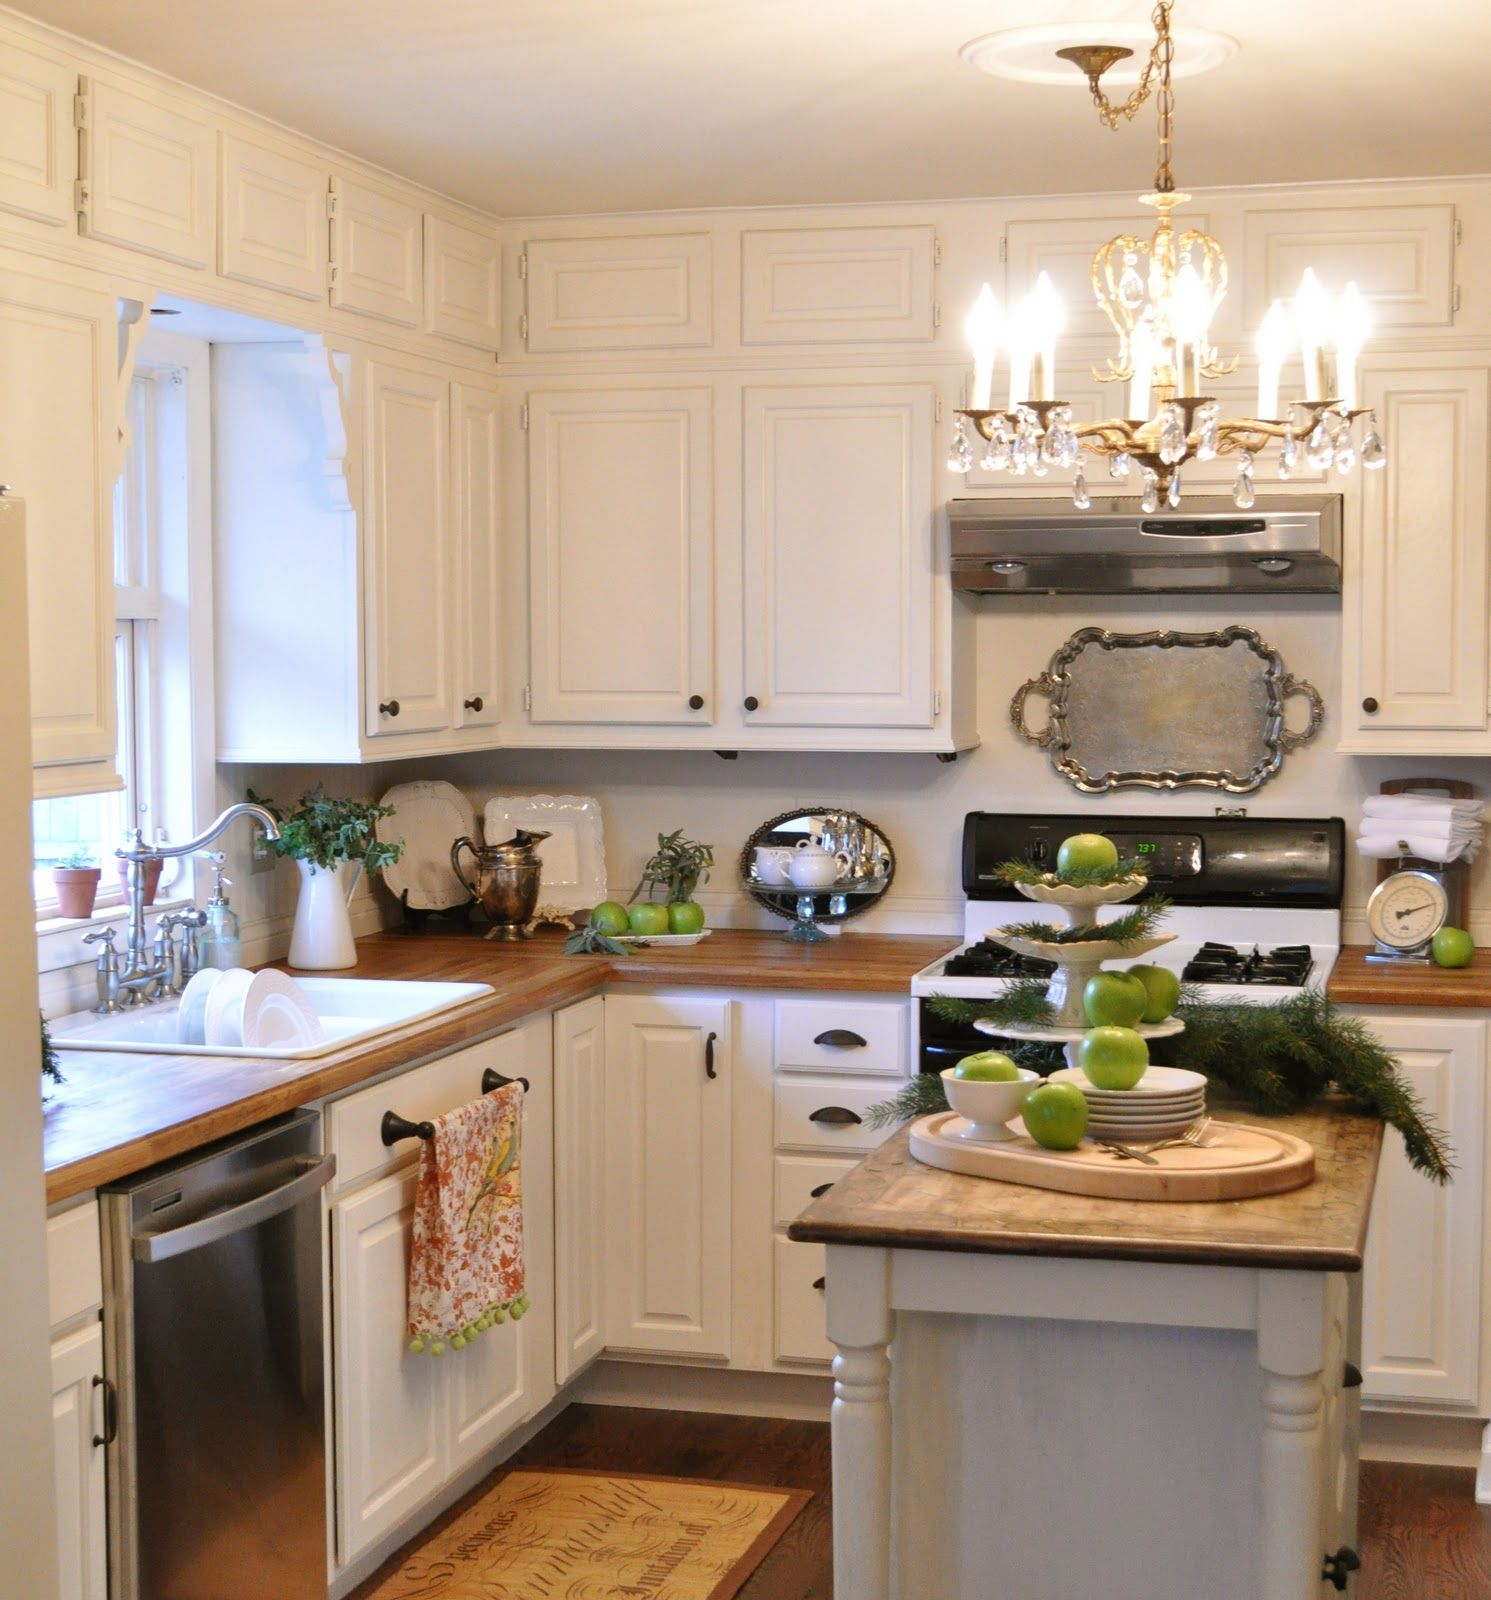 How I Want To Redo The Knobs Of My Kitchen Cabinetslove The Fair Design My Kitchen Layout Design Decoration